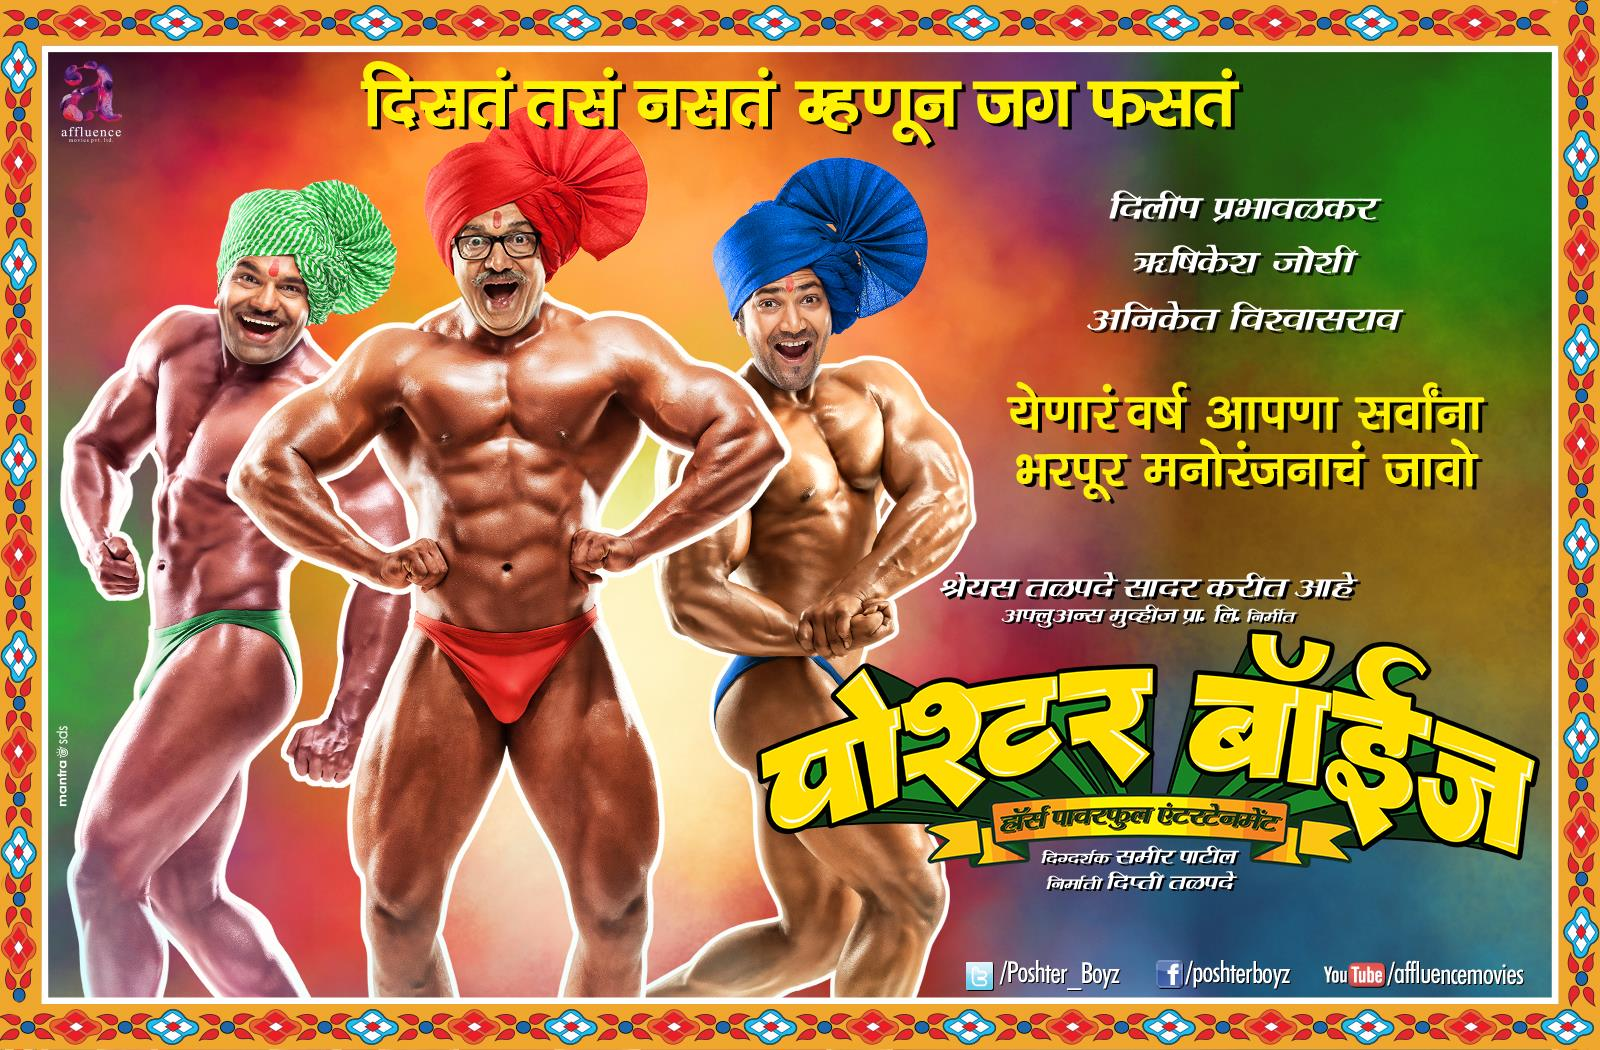 Poshter Boyz (2014) - Marathi Movie